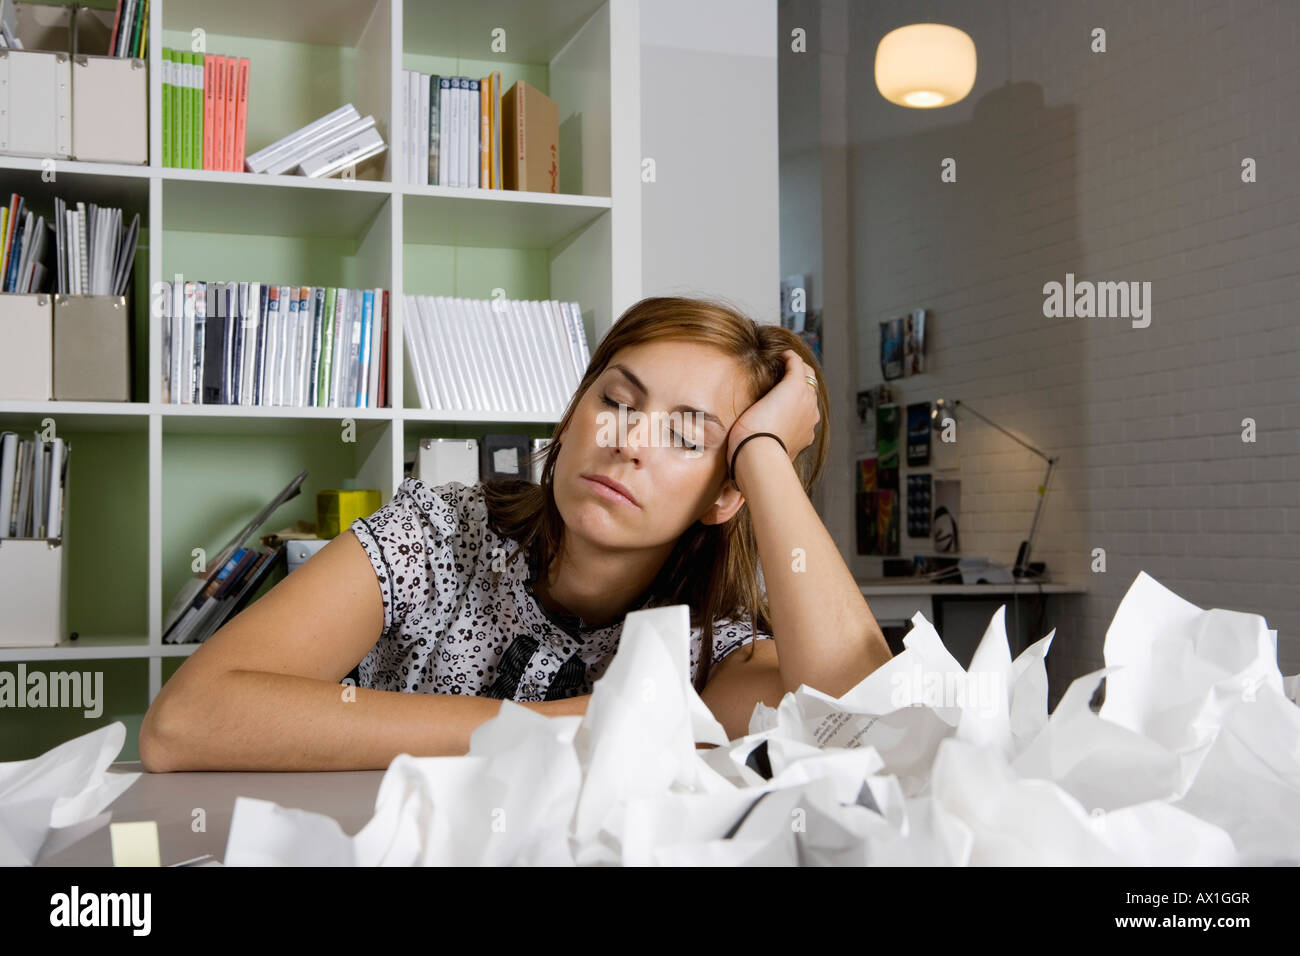 A woman sitting at a desk behind a pile of screwed up paper - Stock Image